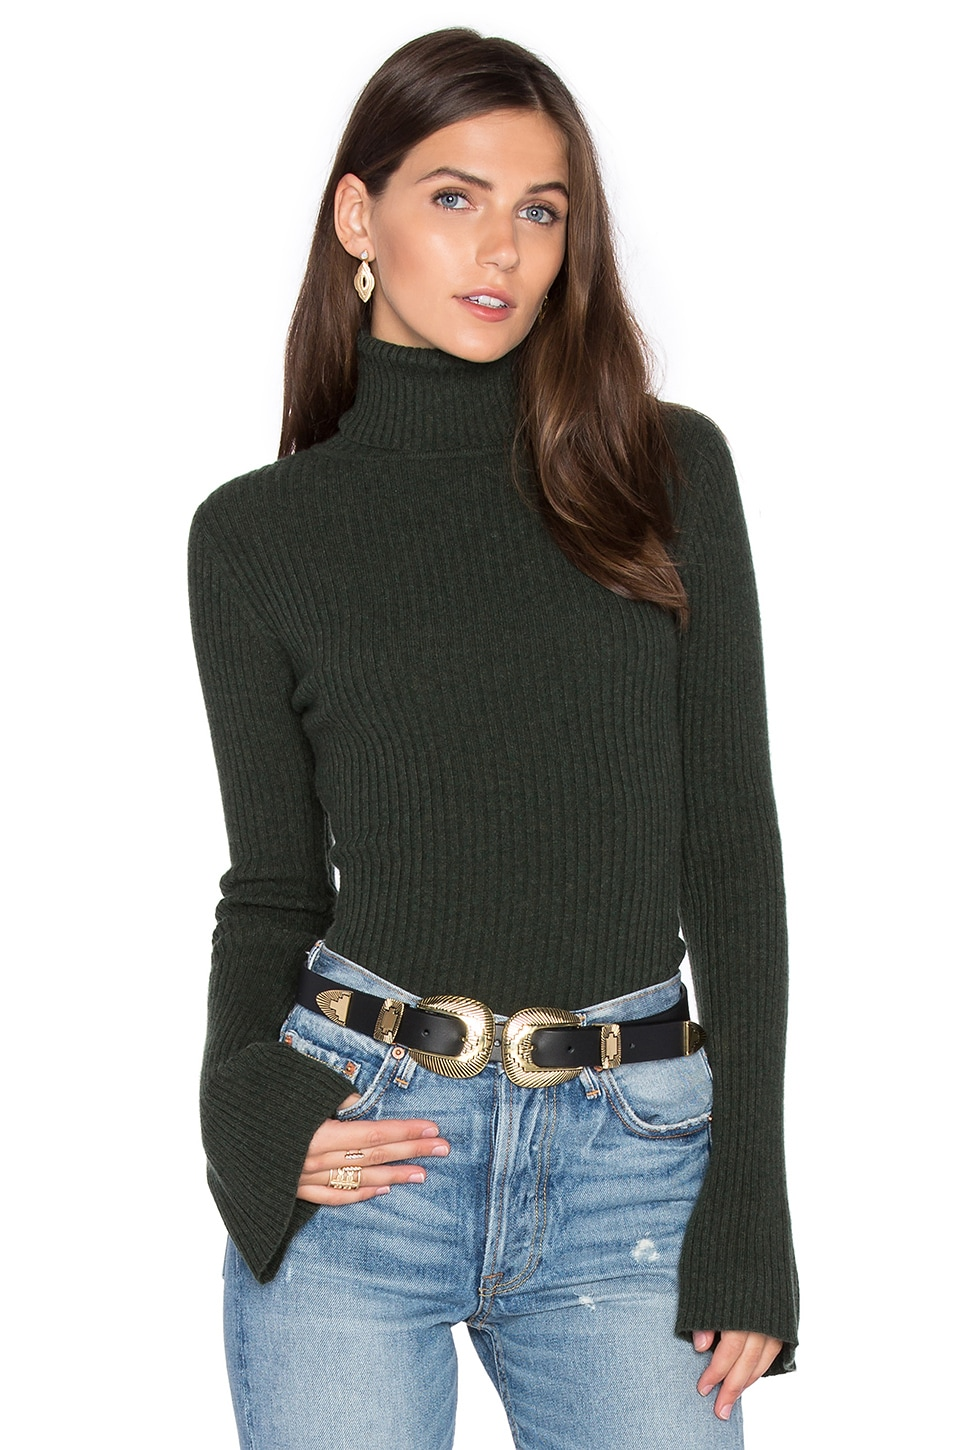 Autumn Cashmere x REVOLVE Ribbed Turtleneck Bell Sleeve Sweater in Kelp